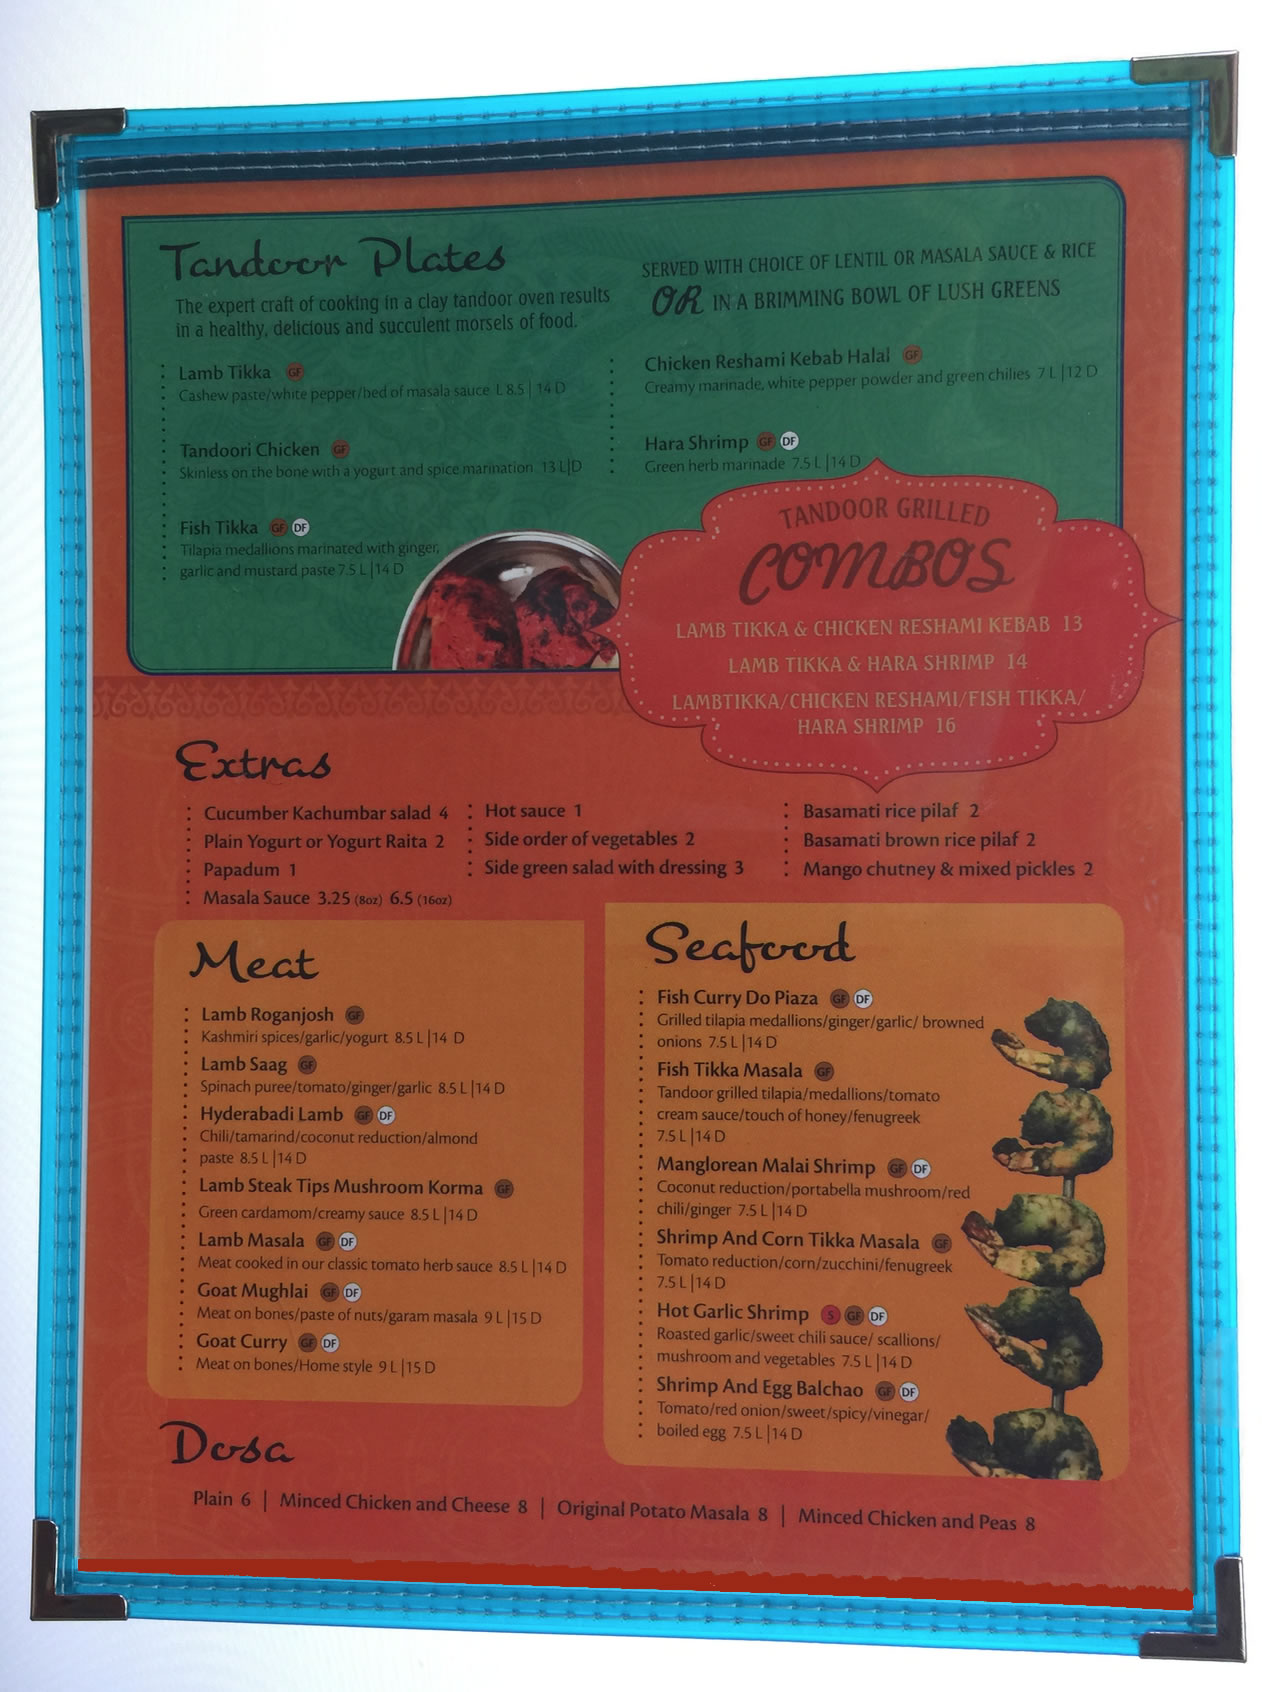 Fiesta translucent edge mexican style menu covers.